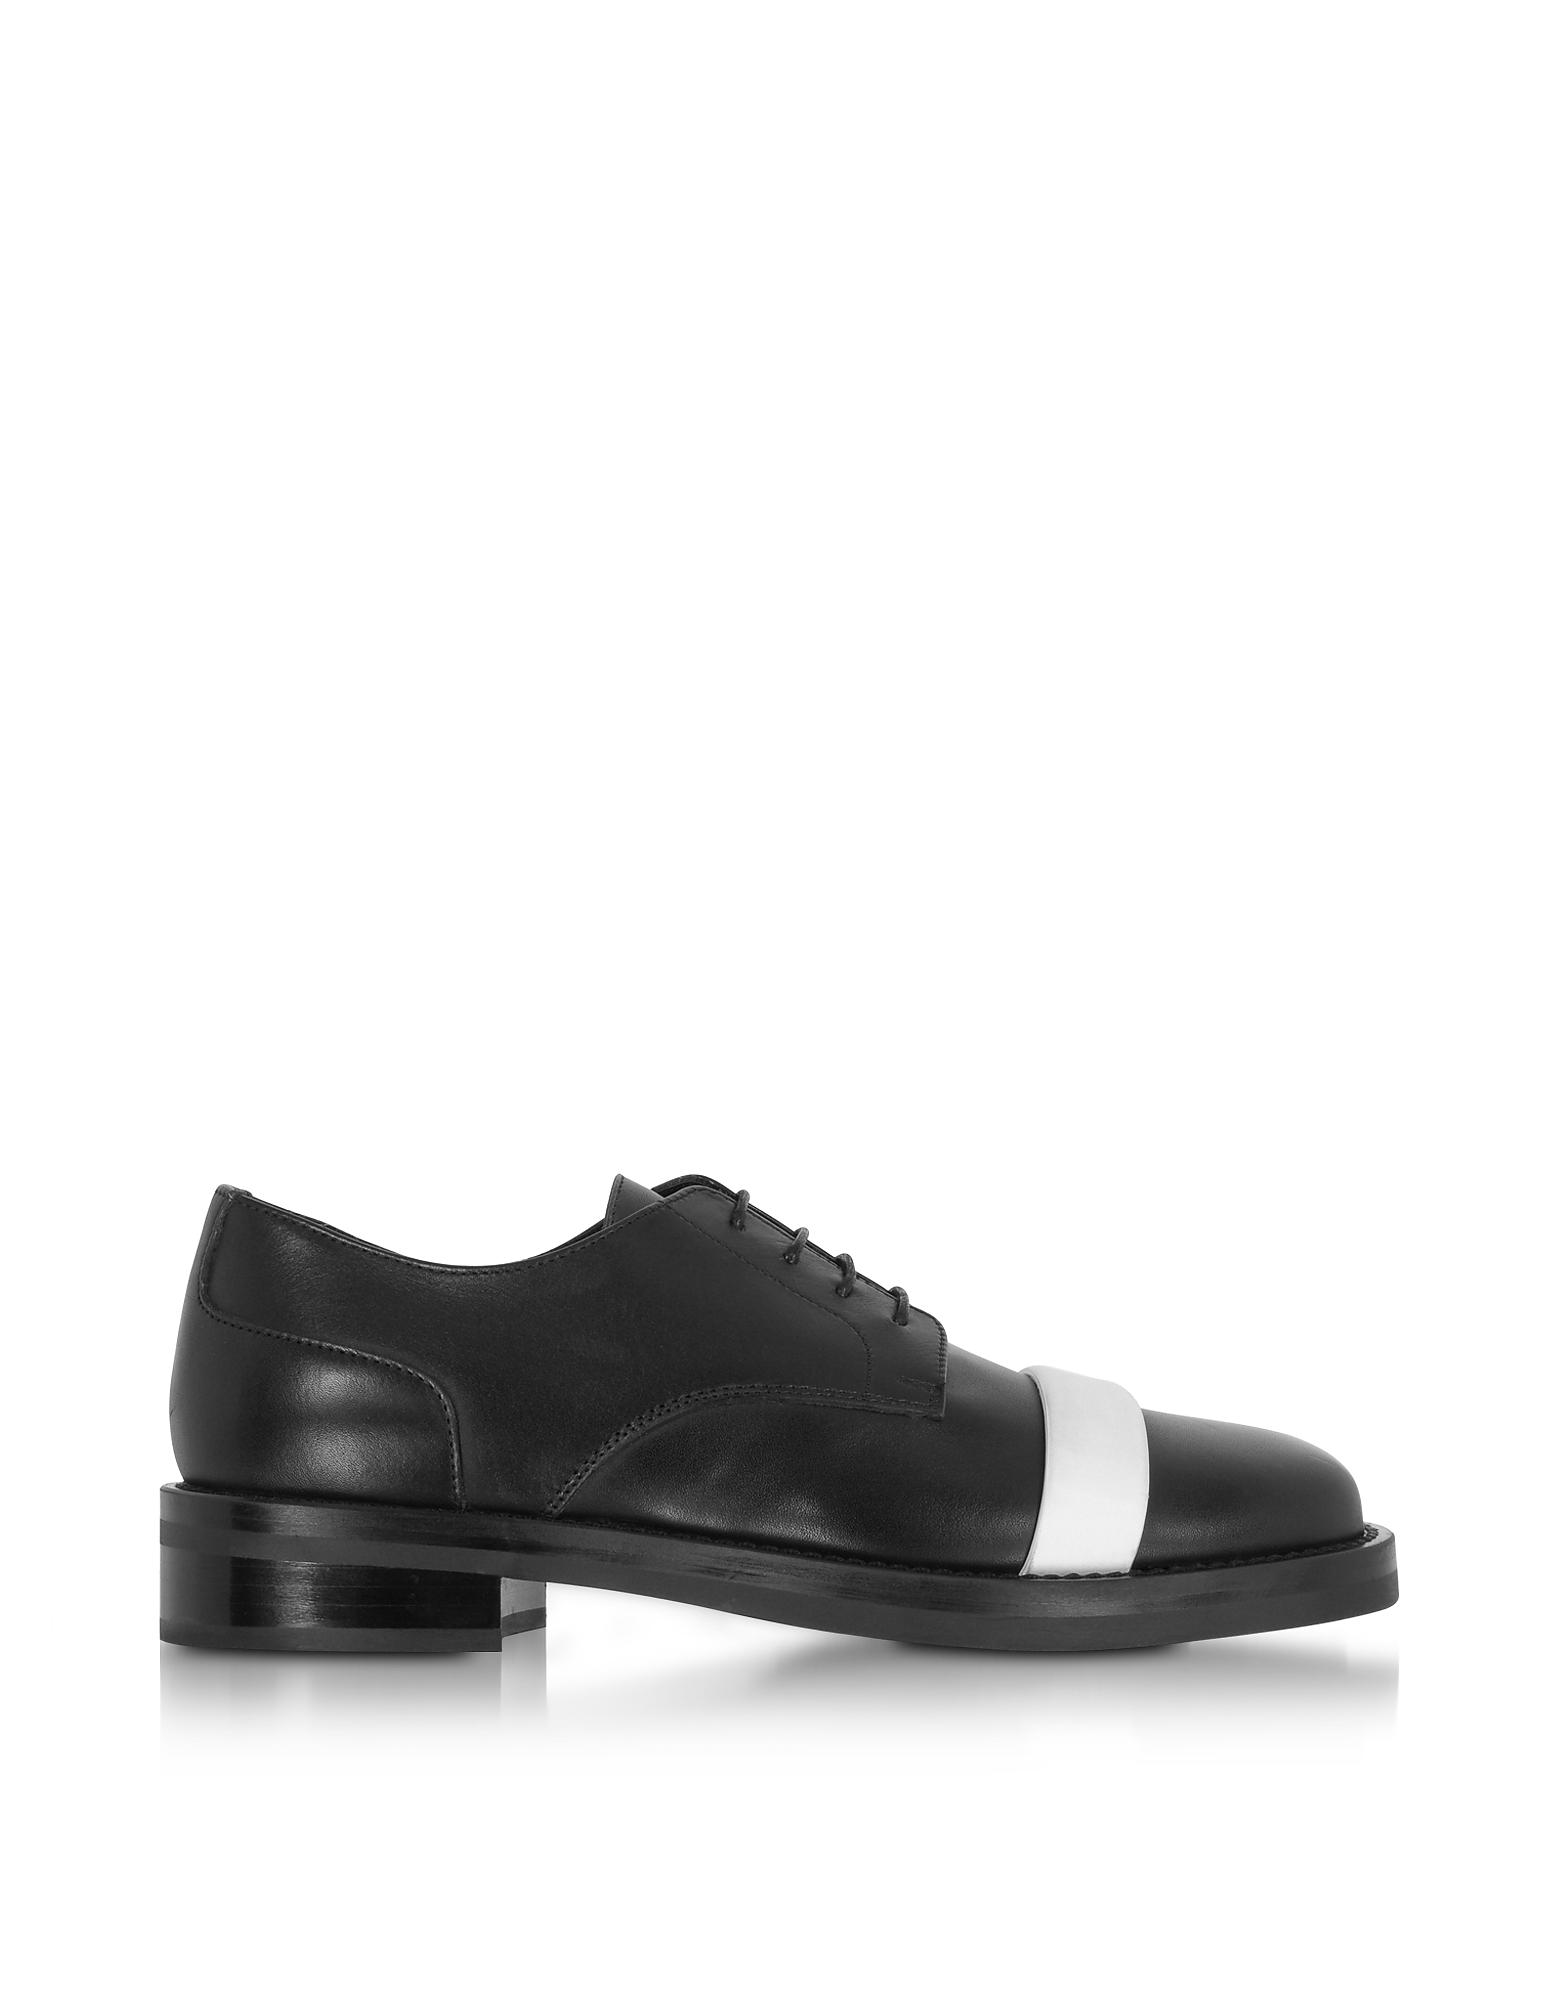 Neil Barrett Shoes, Black Leather Derby Shoes w/White Strap